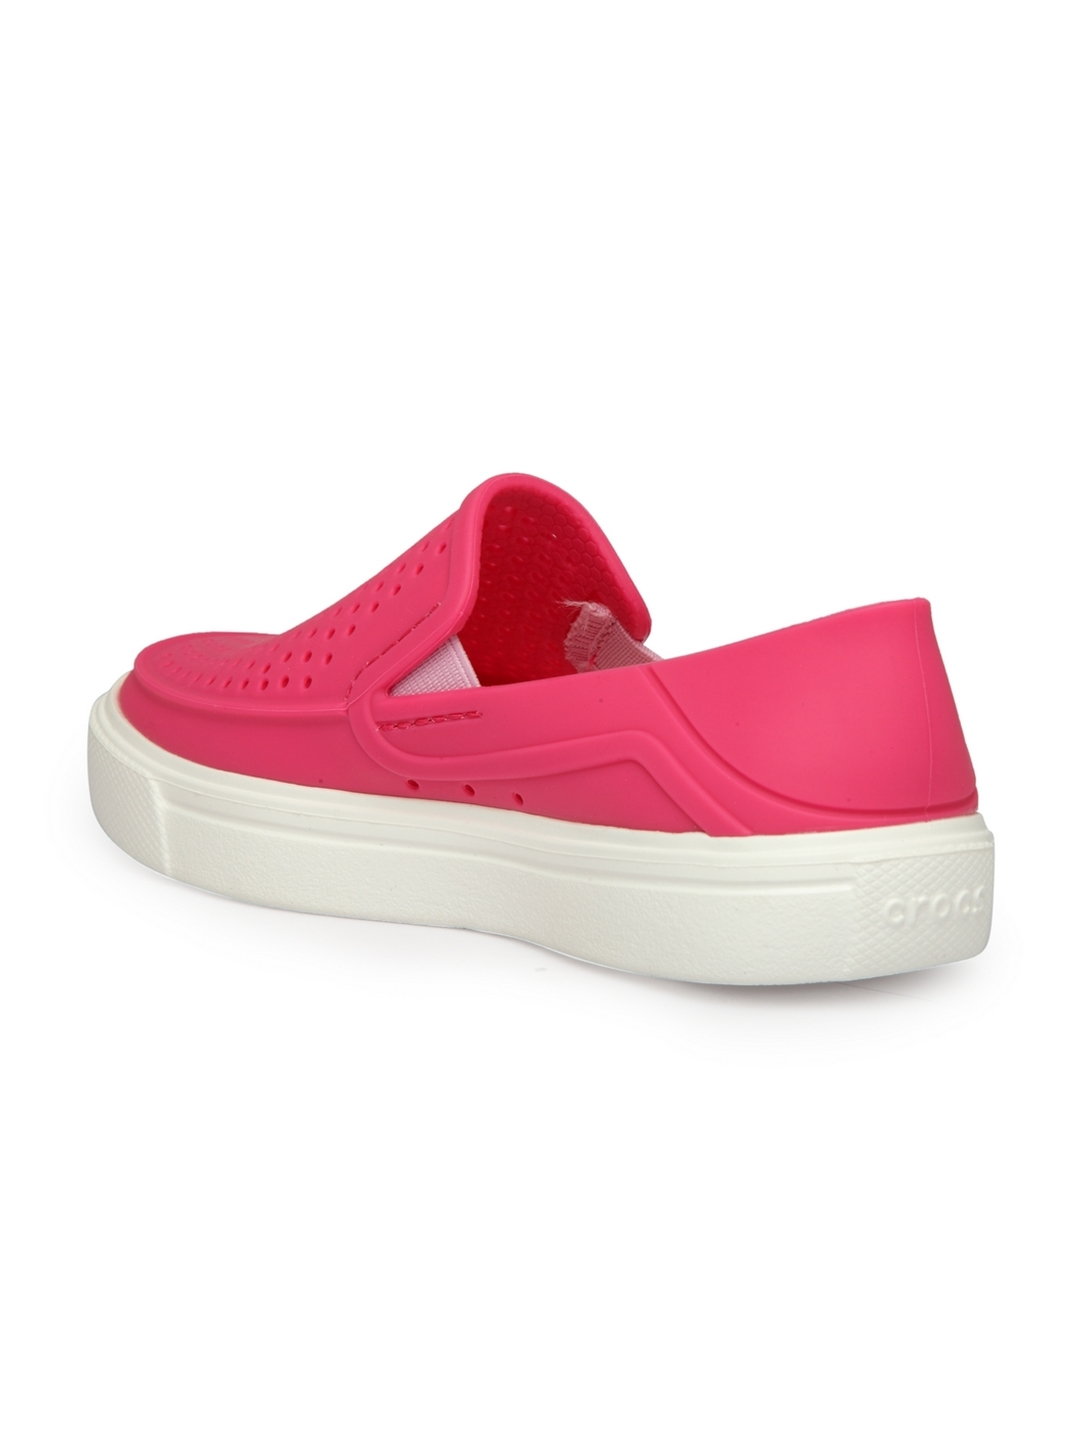 b9468fd0145e0 Buy Crocs Girls Pink Solid Slip On Sneakers - Casual Shoes for Girls ...